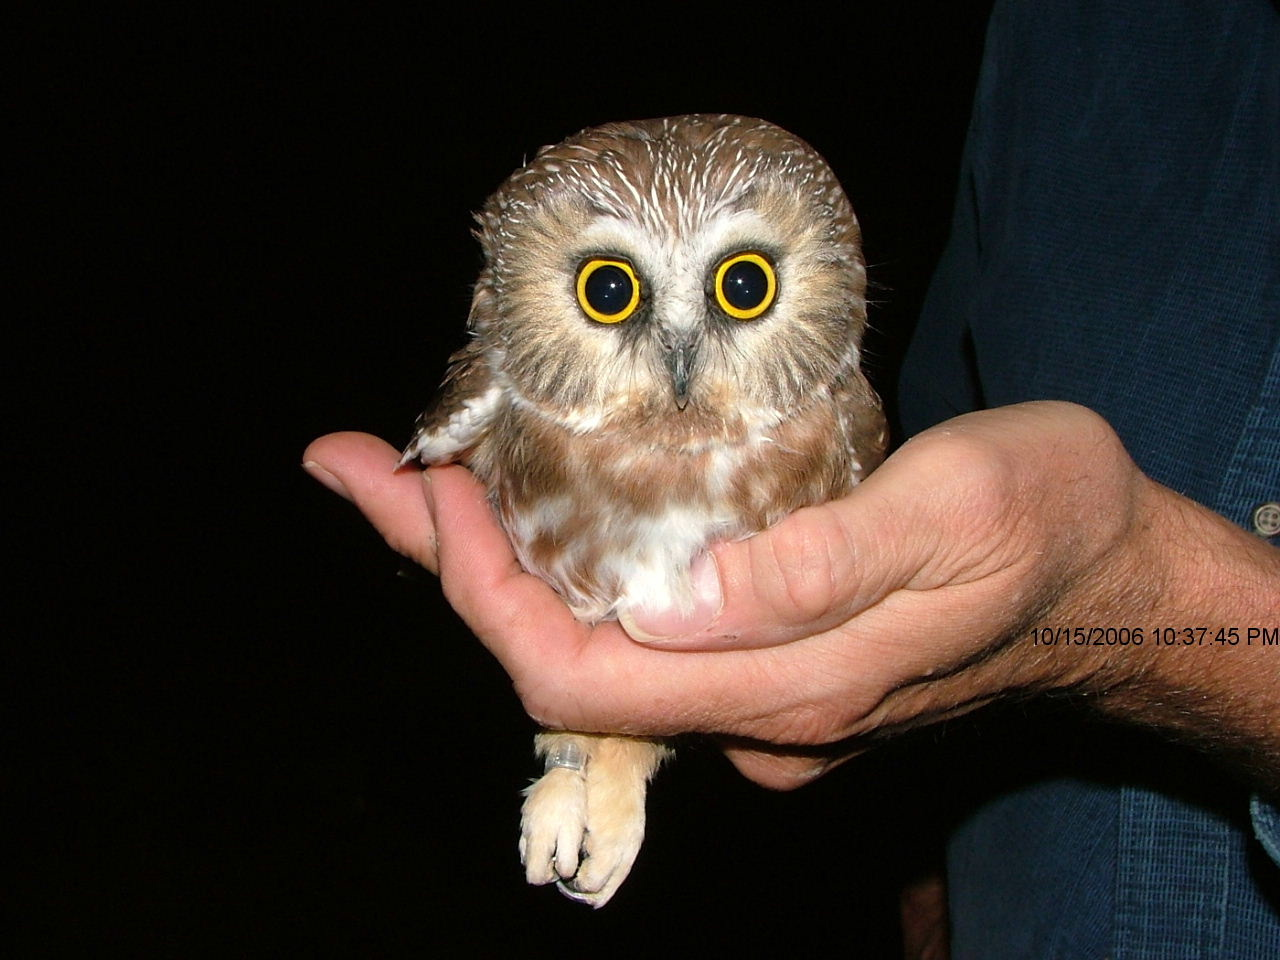 Northern saw w. Northern saw w. Heres another saw whet owl Image